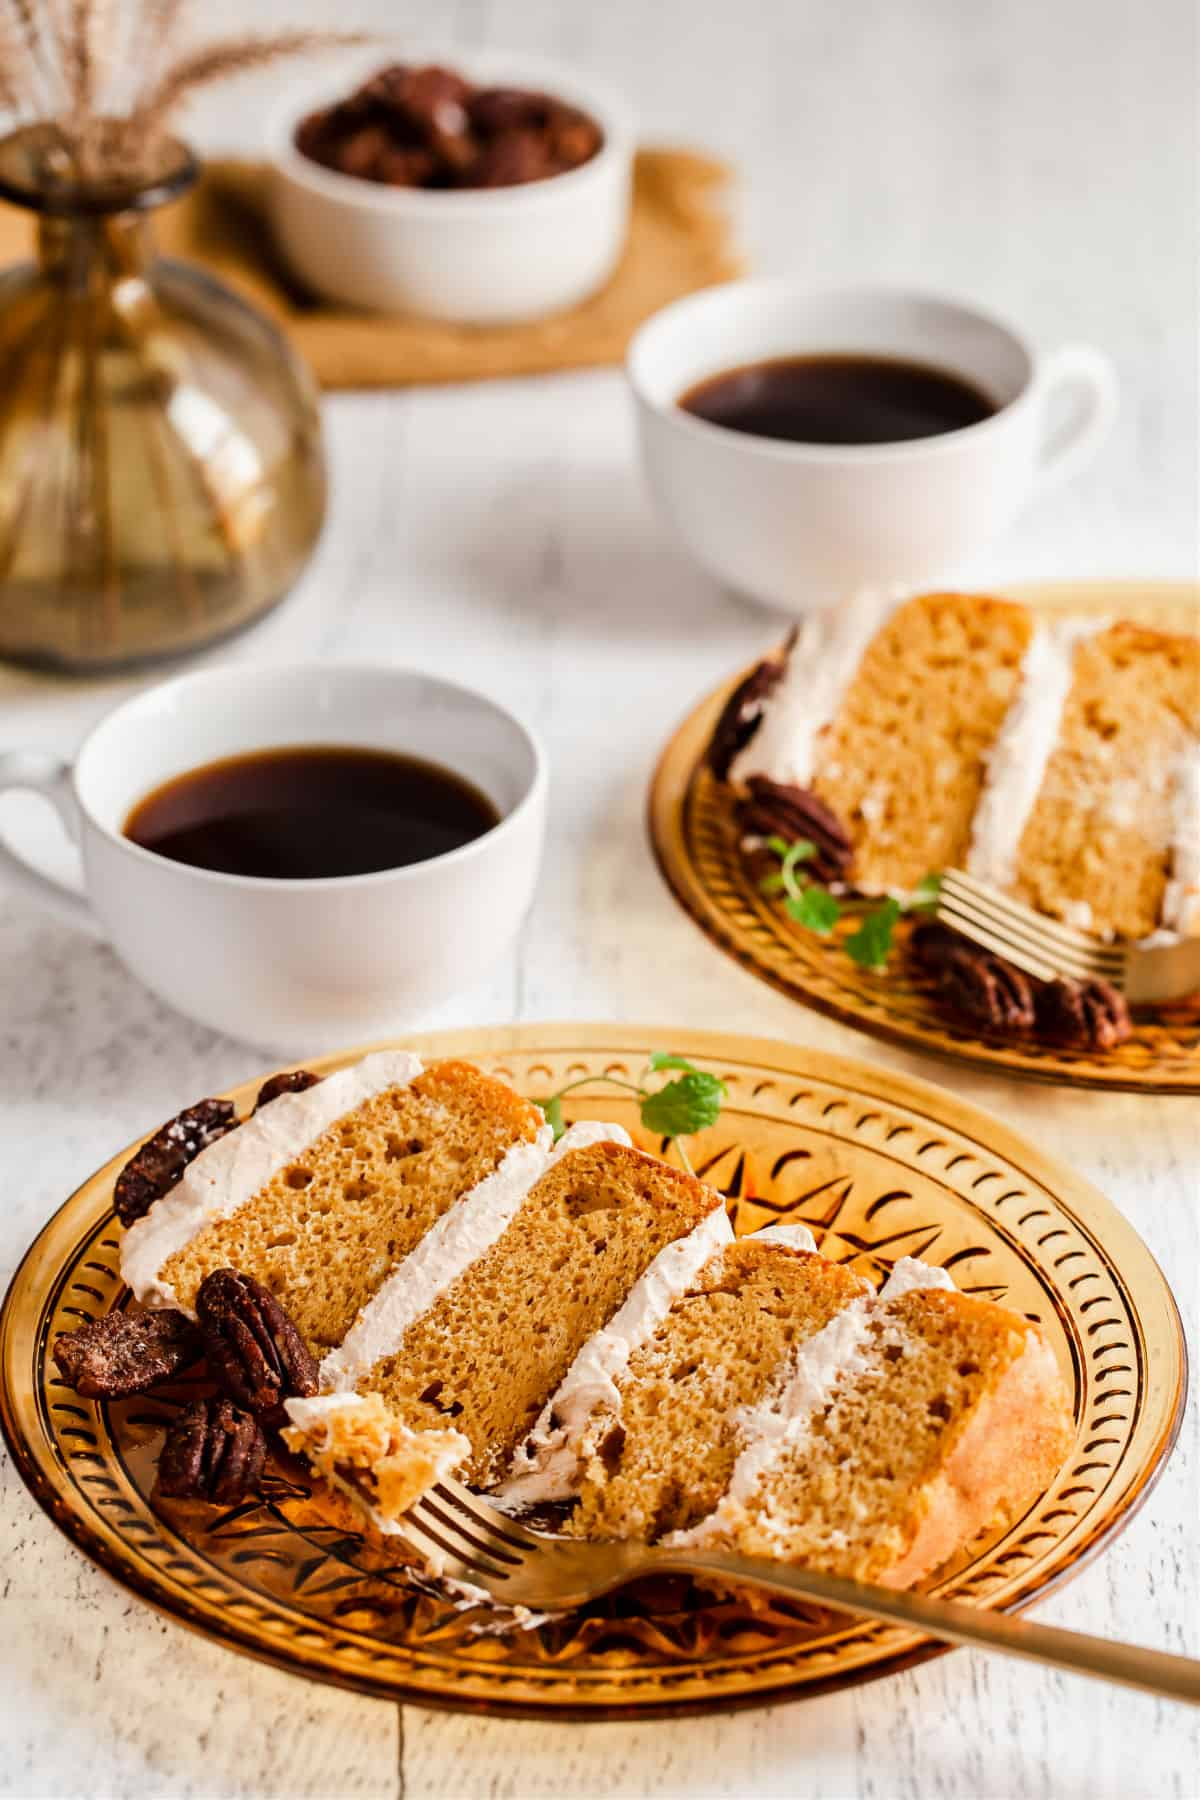 slice of 4 layer cake on golden plate with cup of coffee